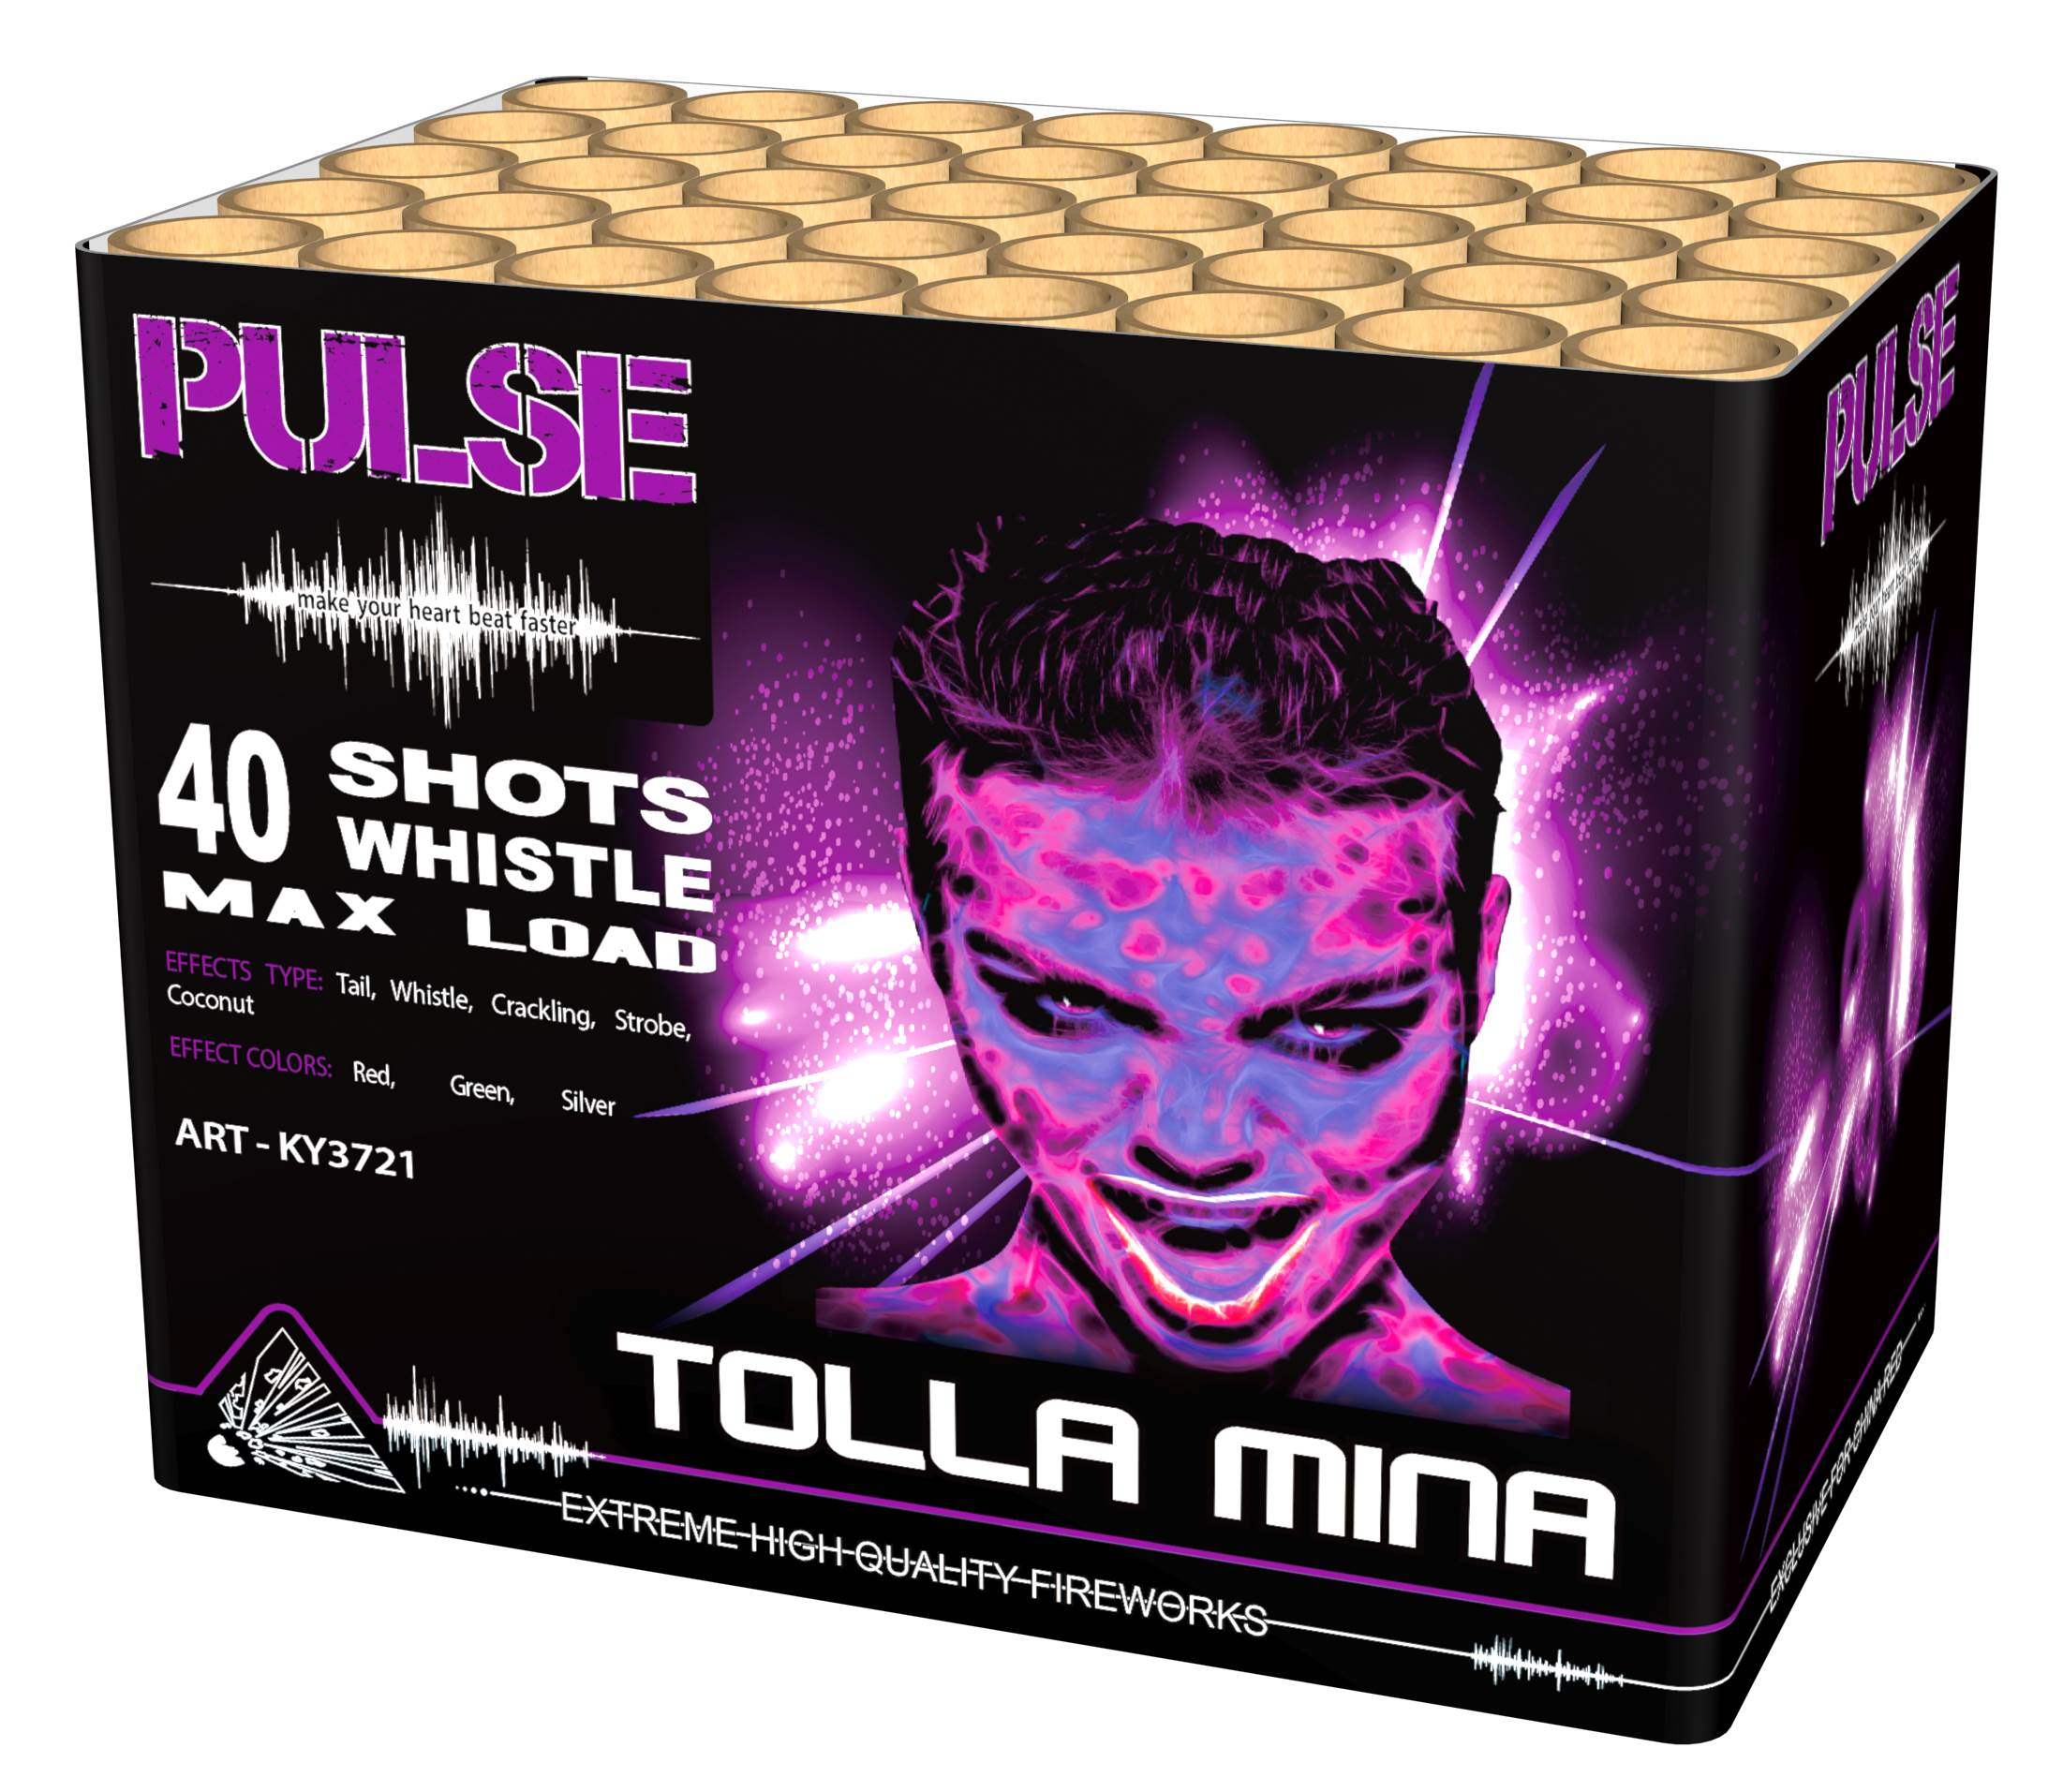 Tolla mina supergave 40 shots cake intratuin enschede for Intratuin enschede